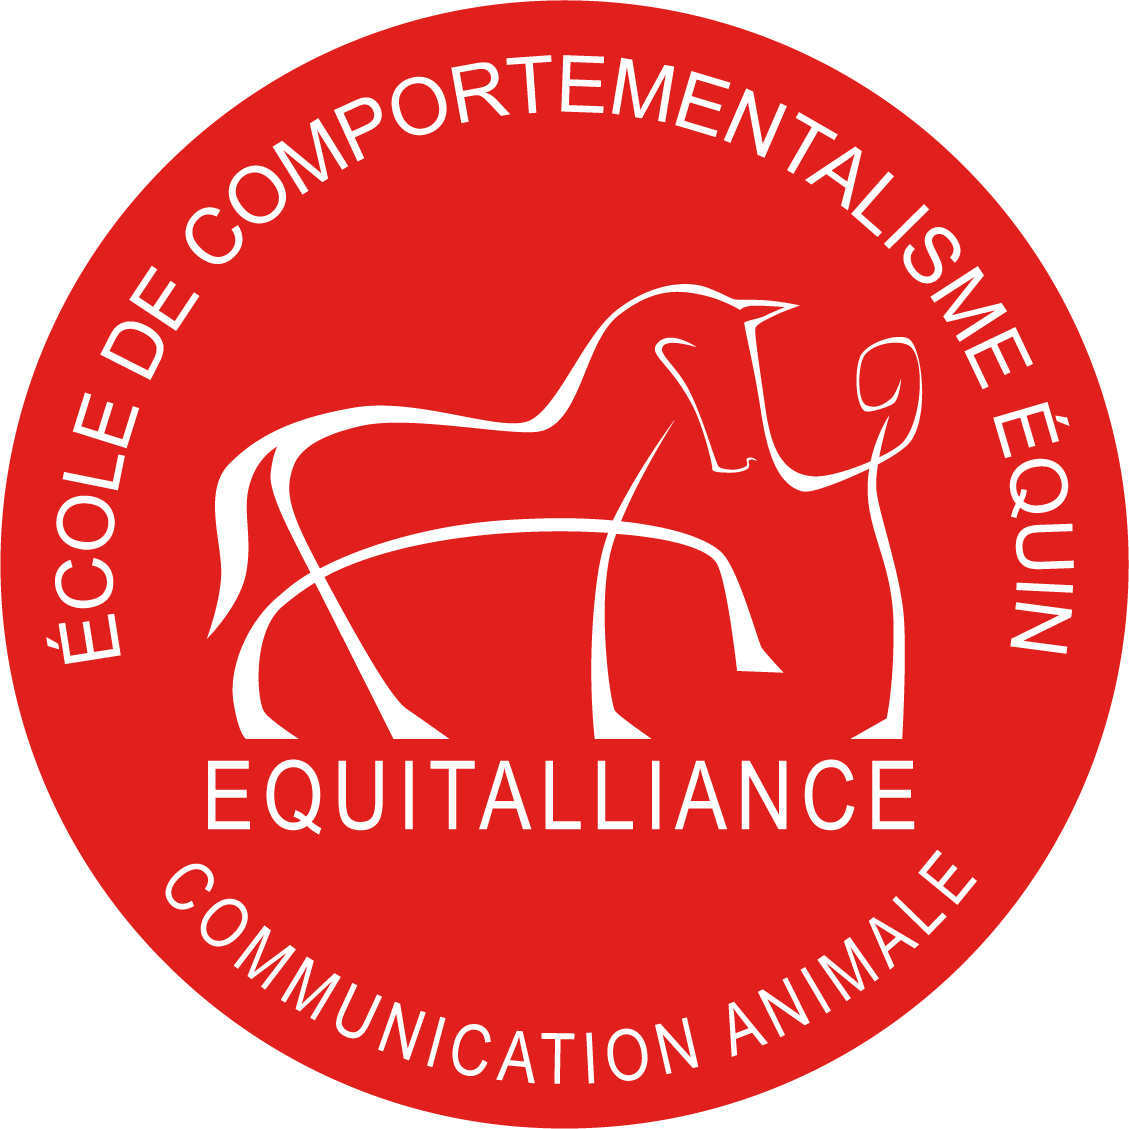 Equitalliance